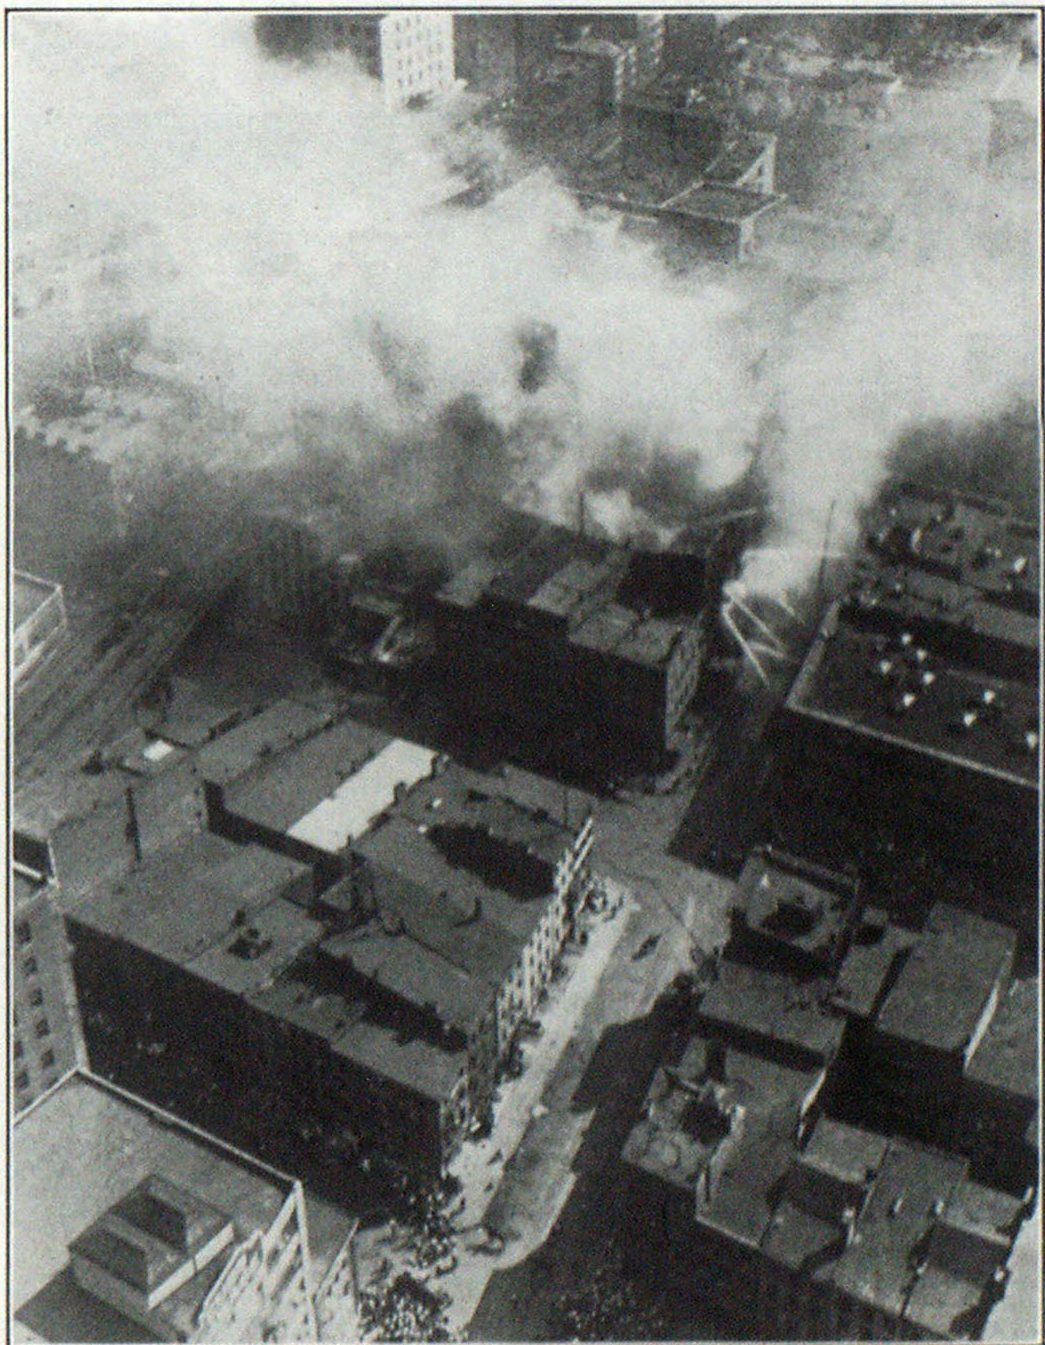 Water Soaked Paper Displaced Wall at This Fire A few years ago, when the James Street, New York, warehouse burned, rolled paper on one of the floors expanded upon been wetted and forced a wall free of the ends of the floor beams, although the building was a reenforced concrete structure. This view is an aerial picture taken after the fire was under control.